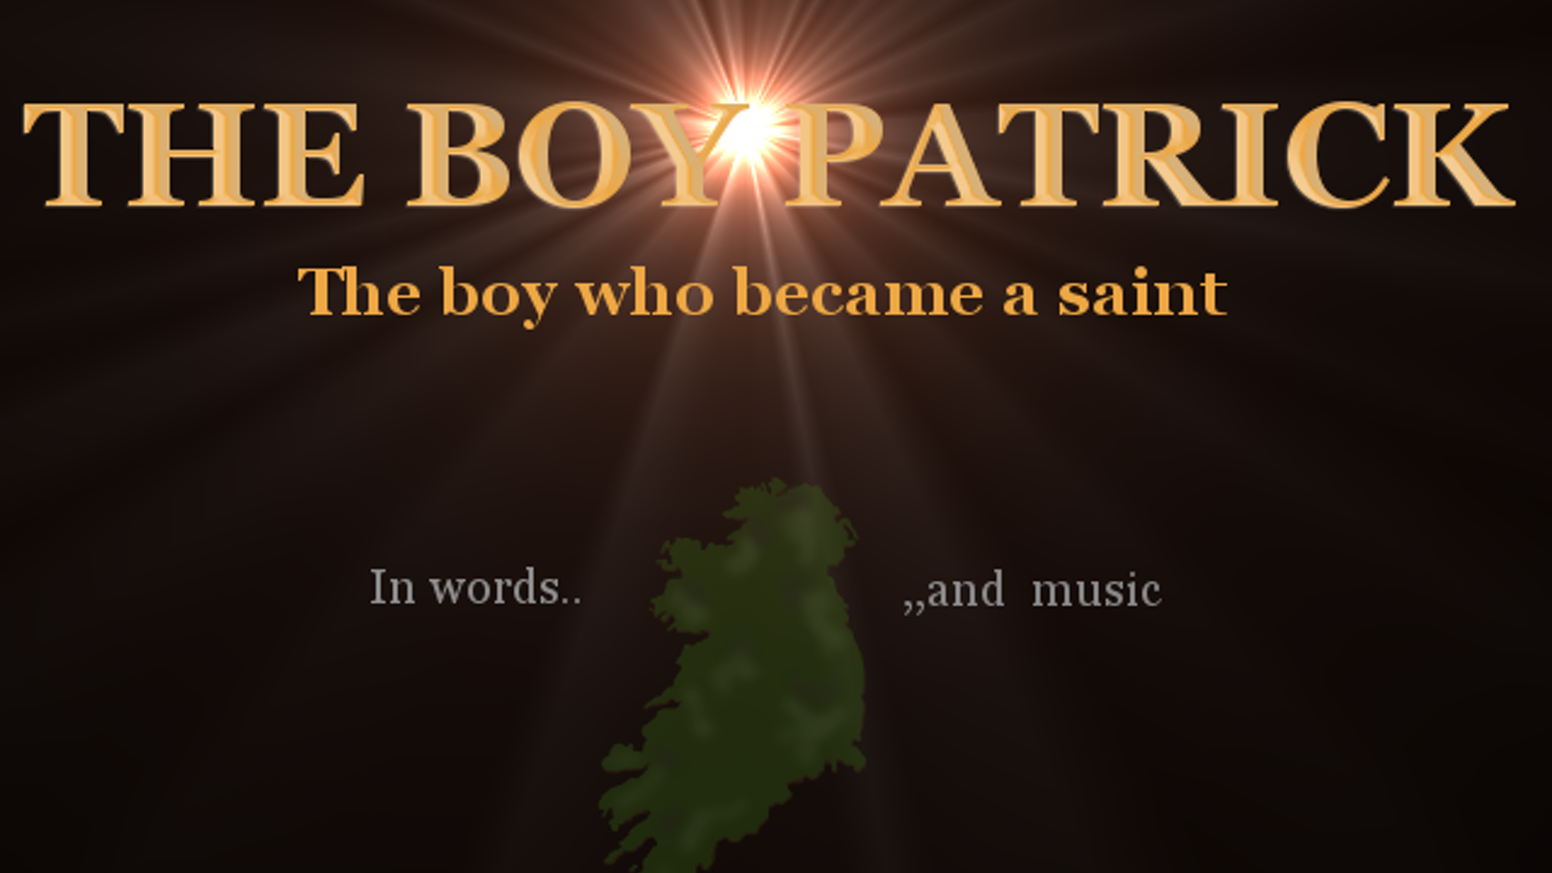 The true story of a boy who became a saint. In words and music. Illustrated book and CD audiobook.If you missed the kickstarter, no worries - go to our brand new Shopify Store!